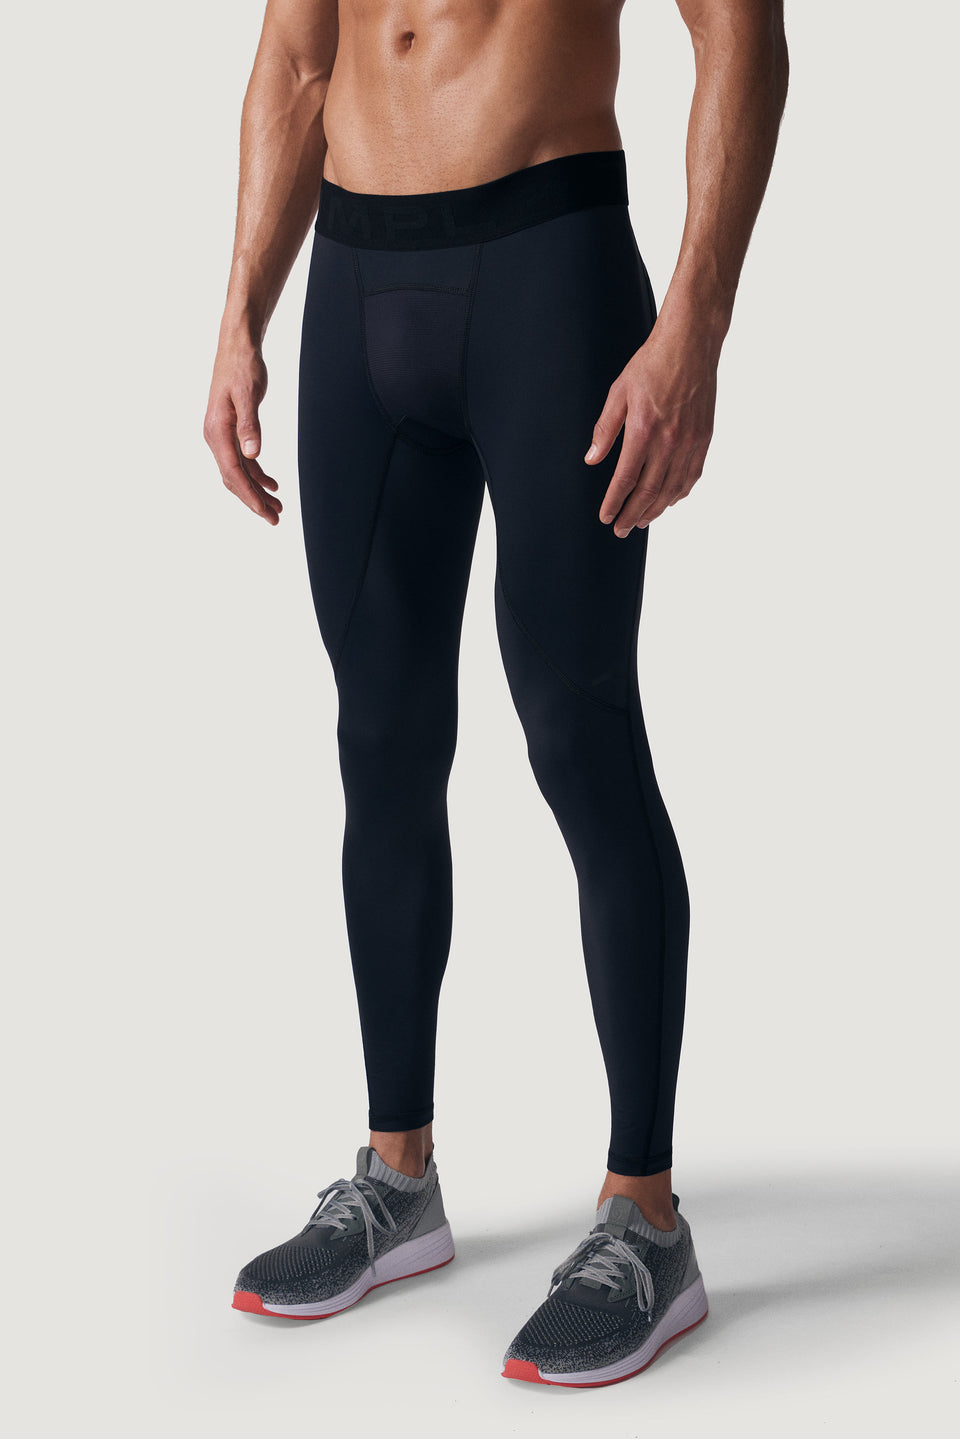 TMPL Men's Alpha DRIVE Full Compression Pant